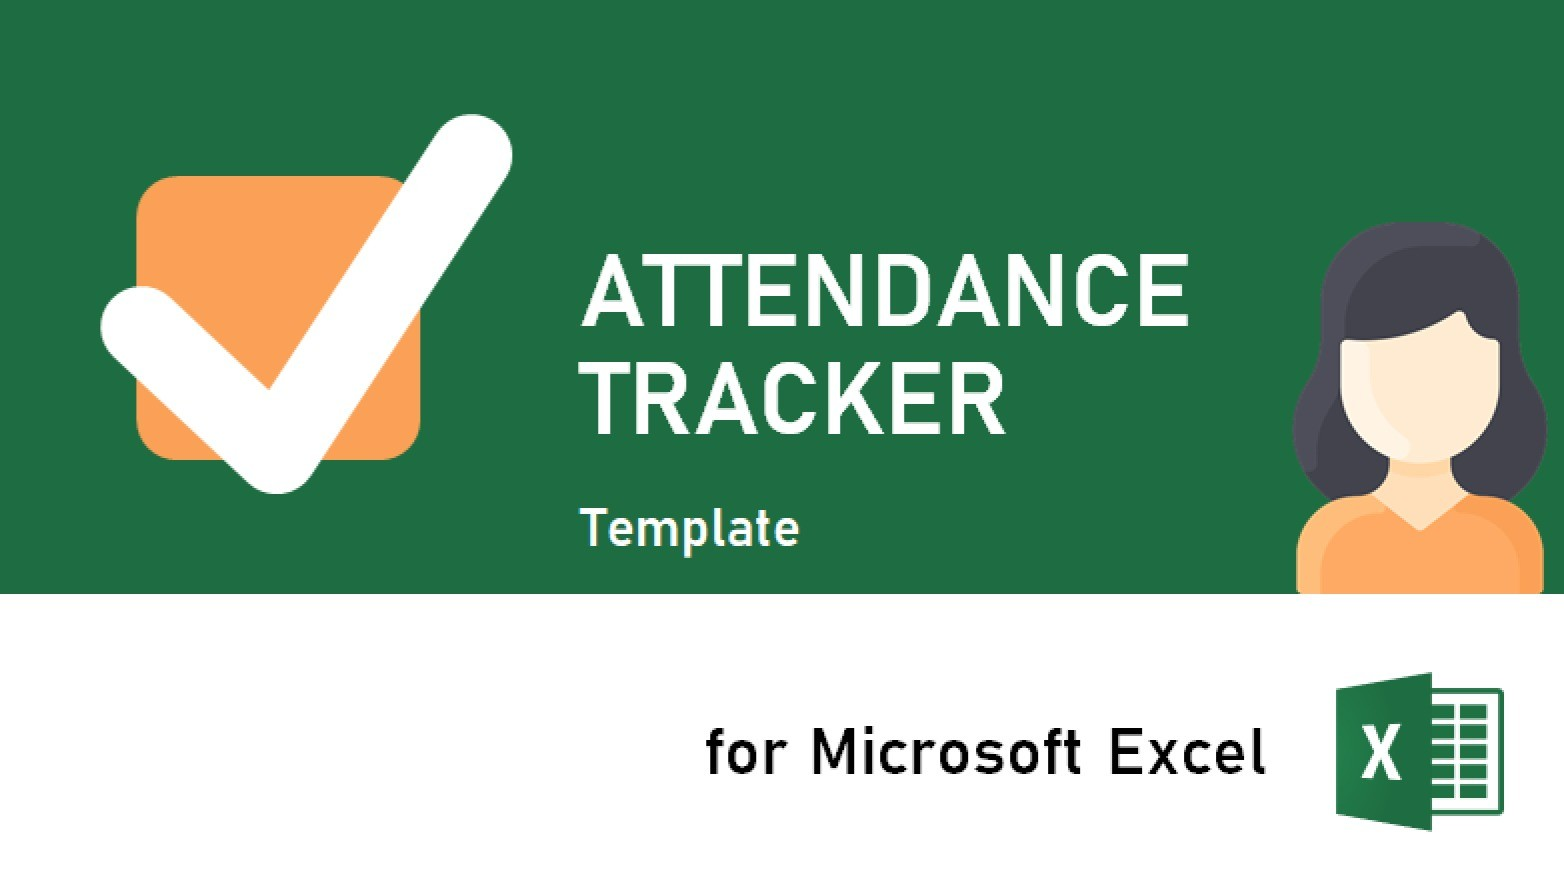 AppSumo Deal for Attendance Tracker Template for Microsoft Excel